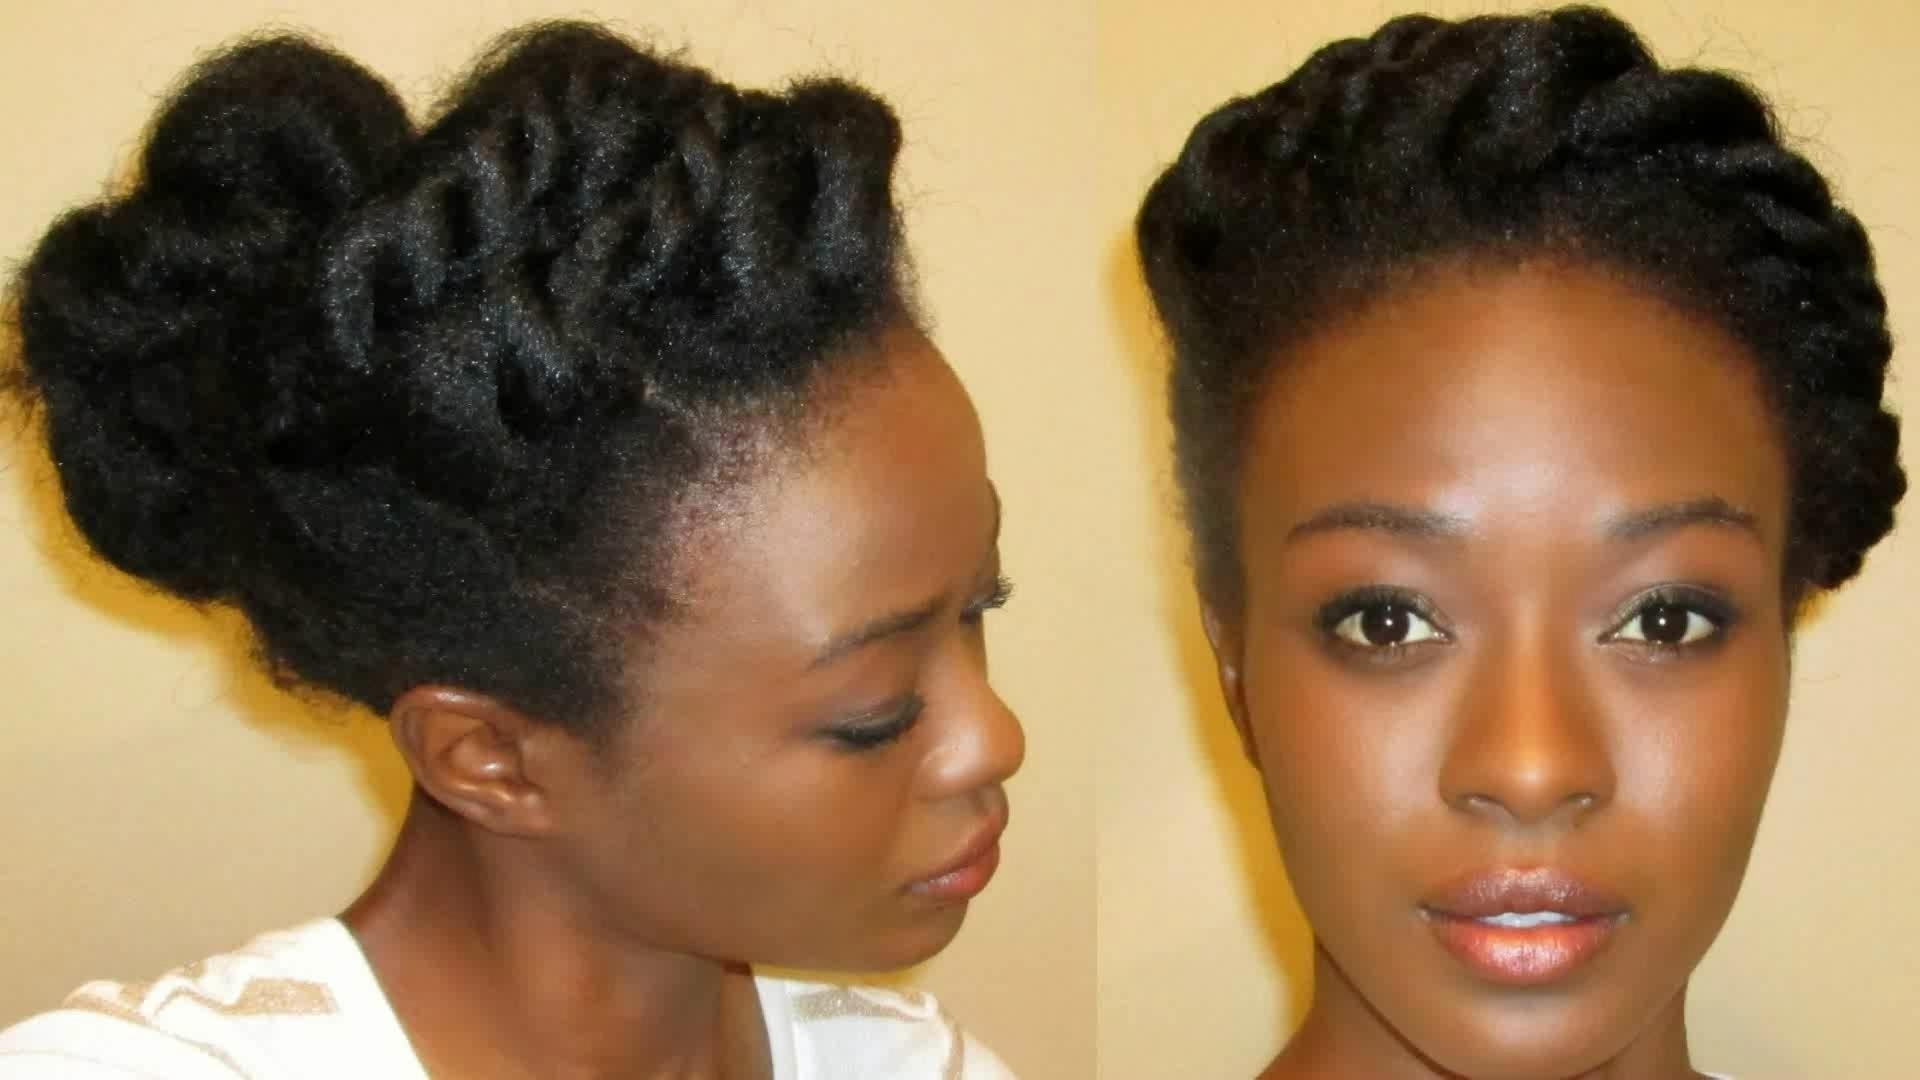 Two Strand Twist Updo On Stretched 4C Natural Hair – Youtube Pertaining To 2 Strand Twist Updo Hairstyles (View 13 of 15)